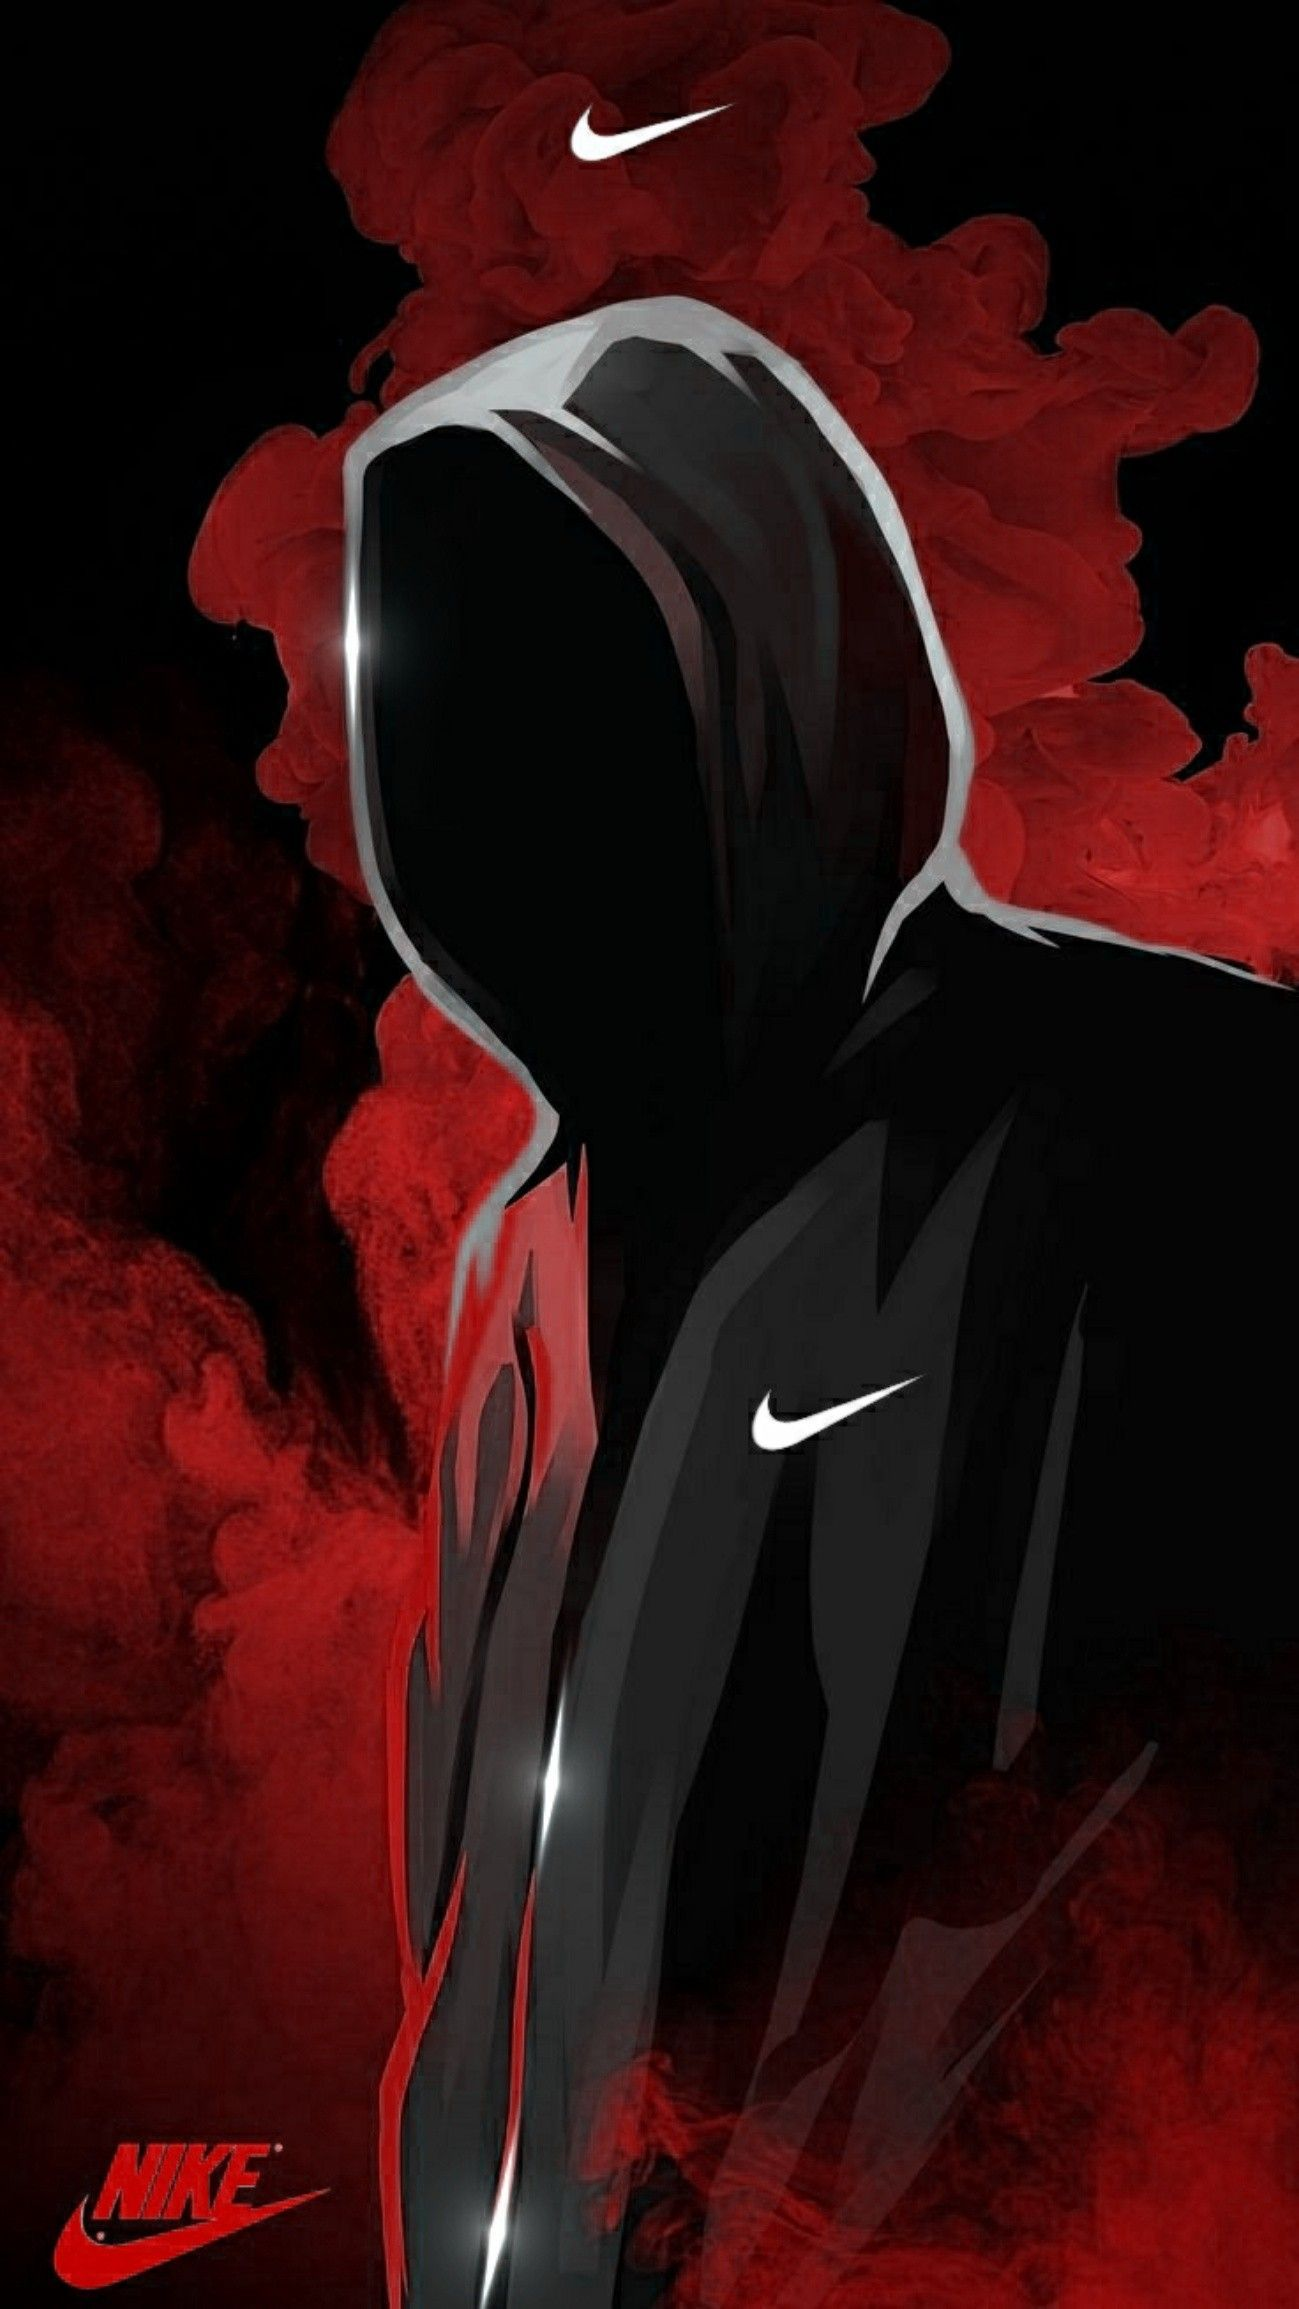 Images By Hooter's Konceptz On Nike Wallpaper   Cool Nike Wallpapers, Dark Phone Wallpapers, Nike Logo Wallpapers F37